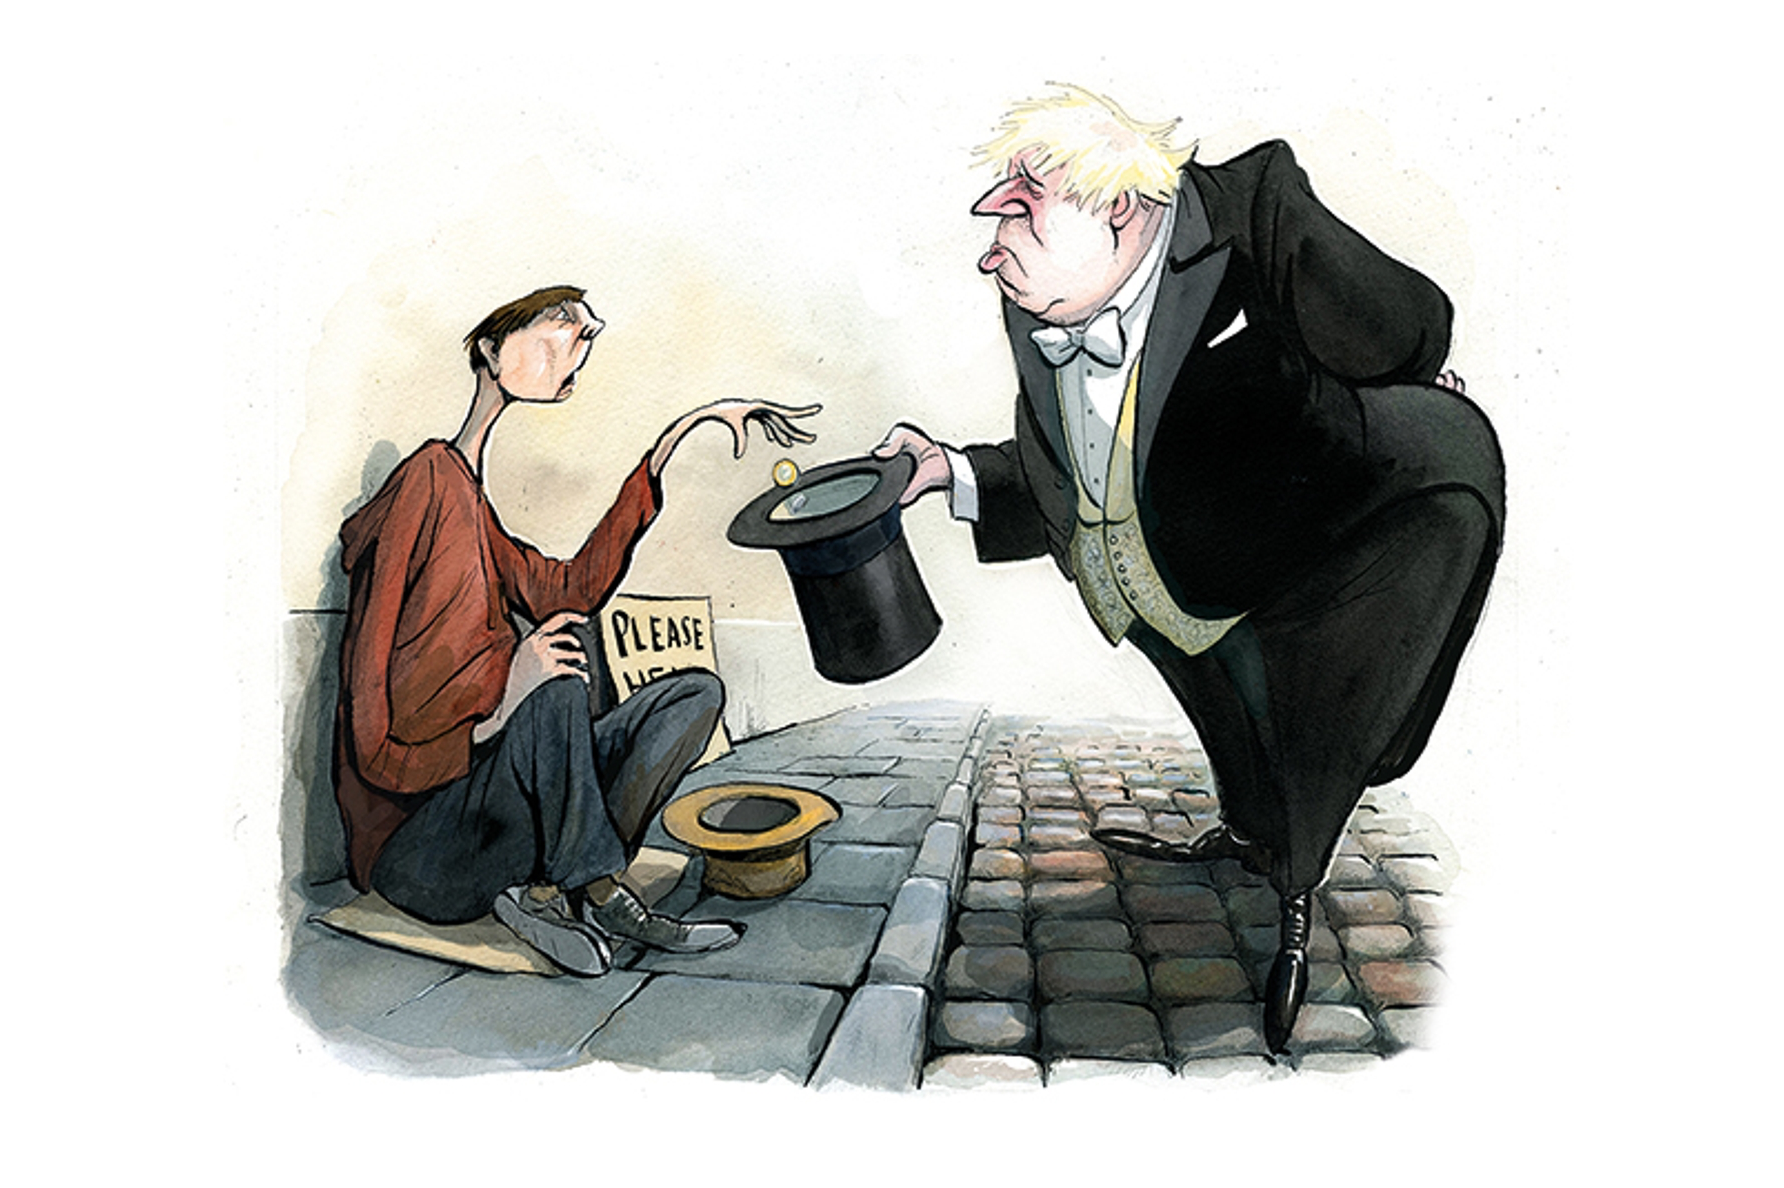 Assetocracy: the inversion of the welfare state